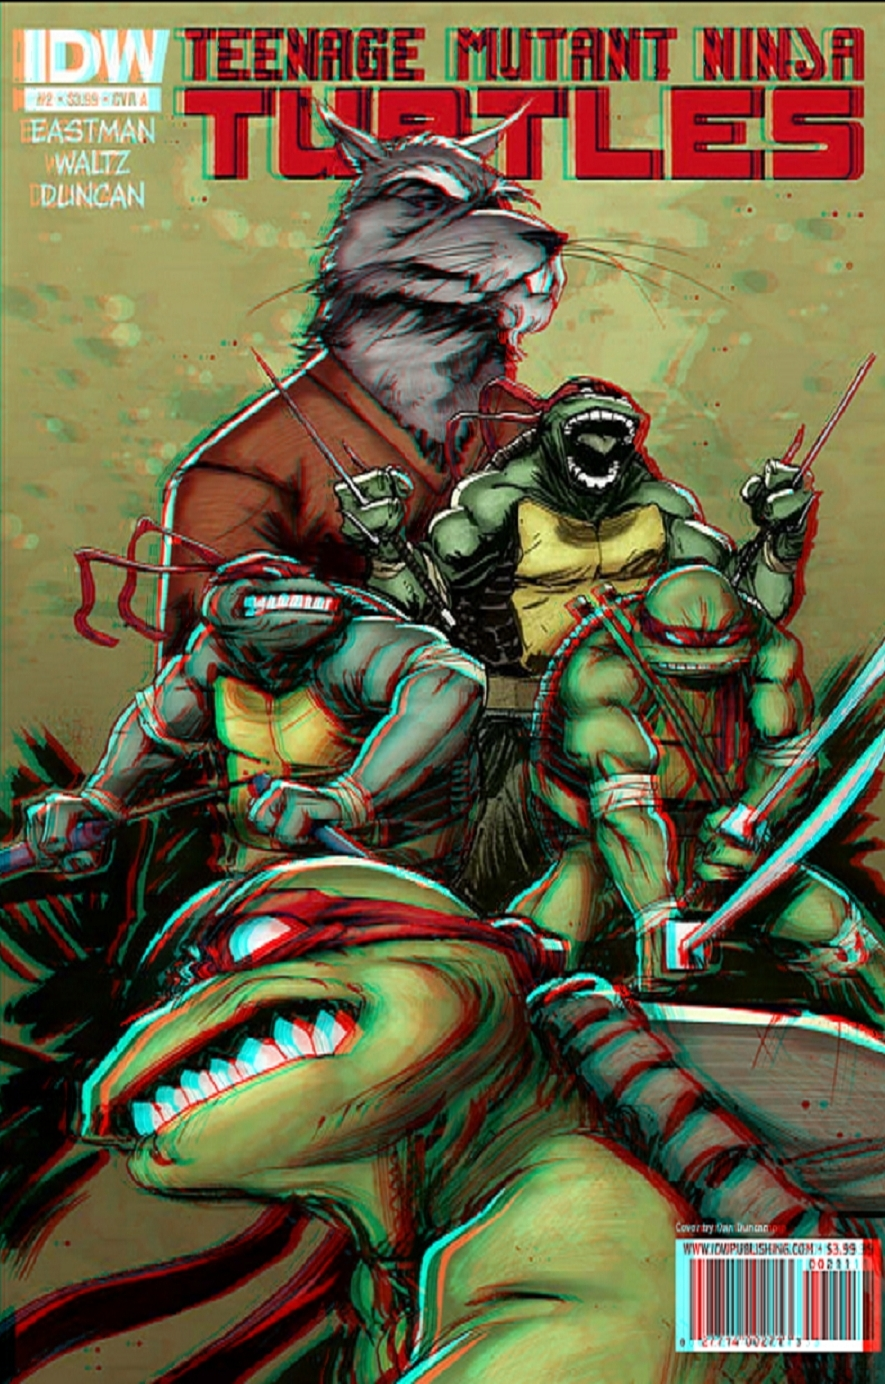 tmnt_3d_anaglyph_by_xmancyclops-d4our31 dans 3D